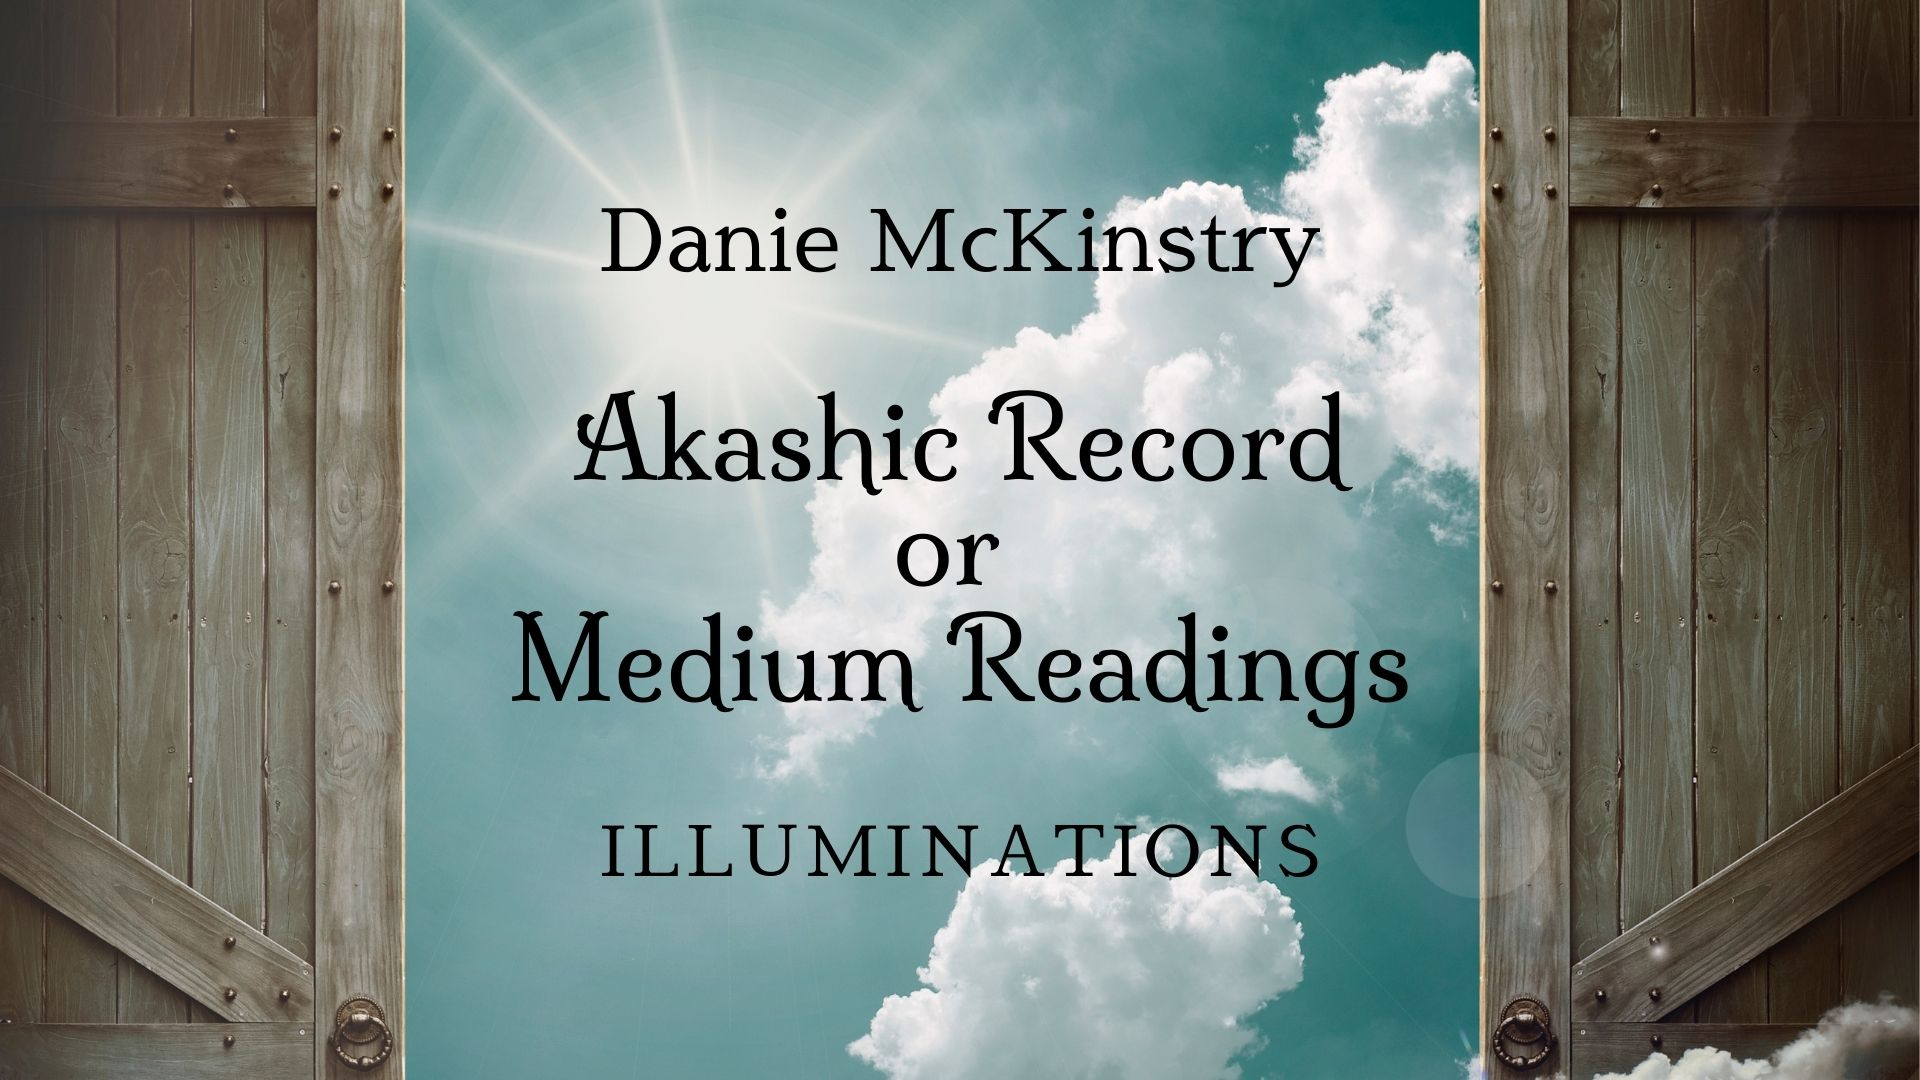 Askashic Record and Medium Readings by Danie McKinstry